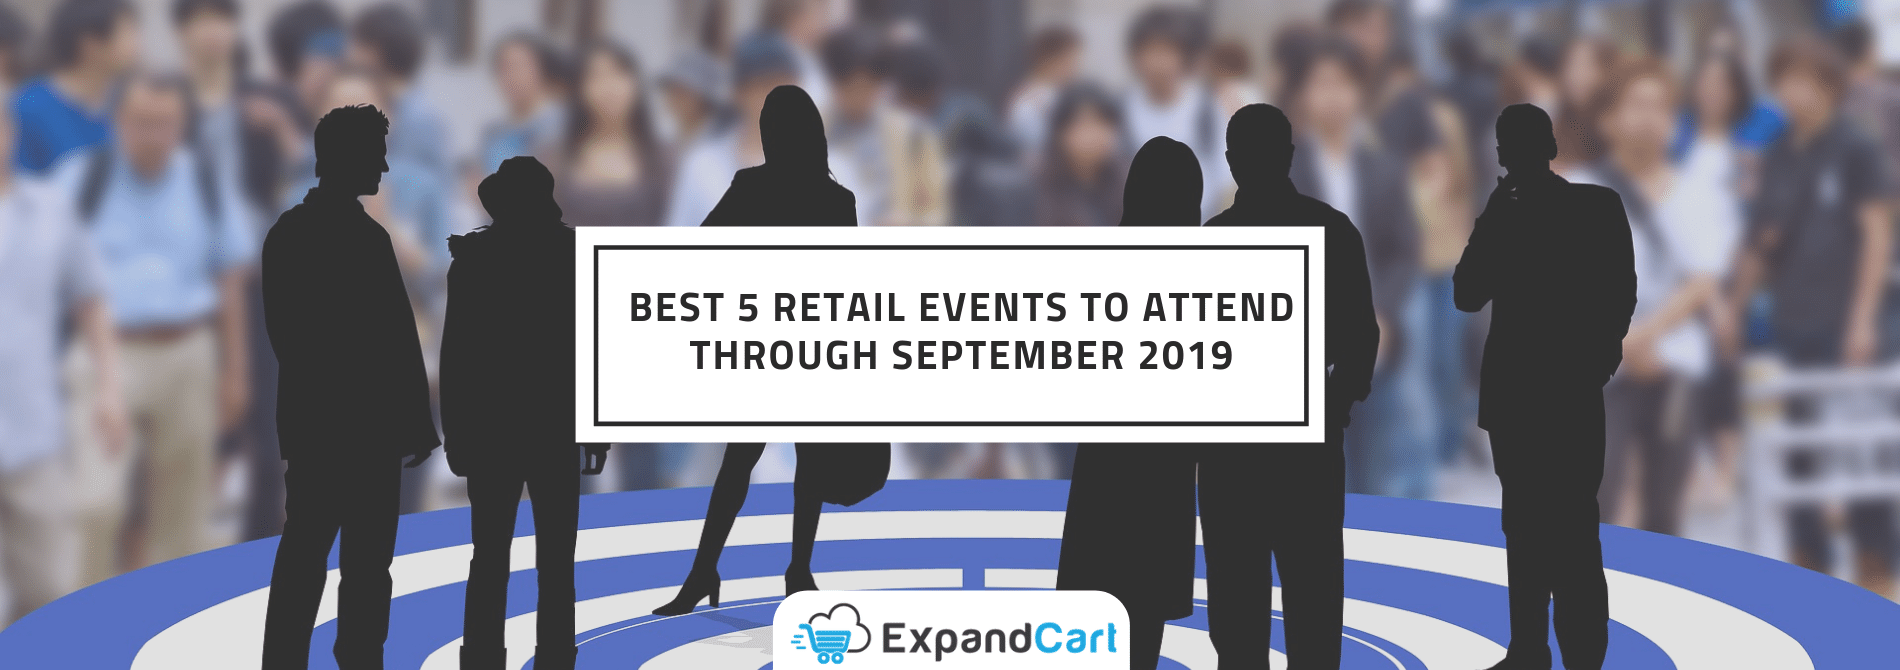 Best 5 Retail Events To Attend Through September 2019